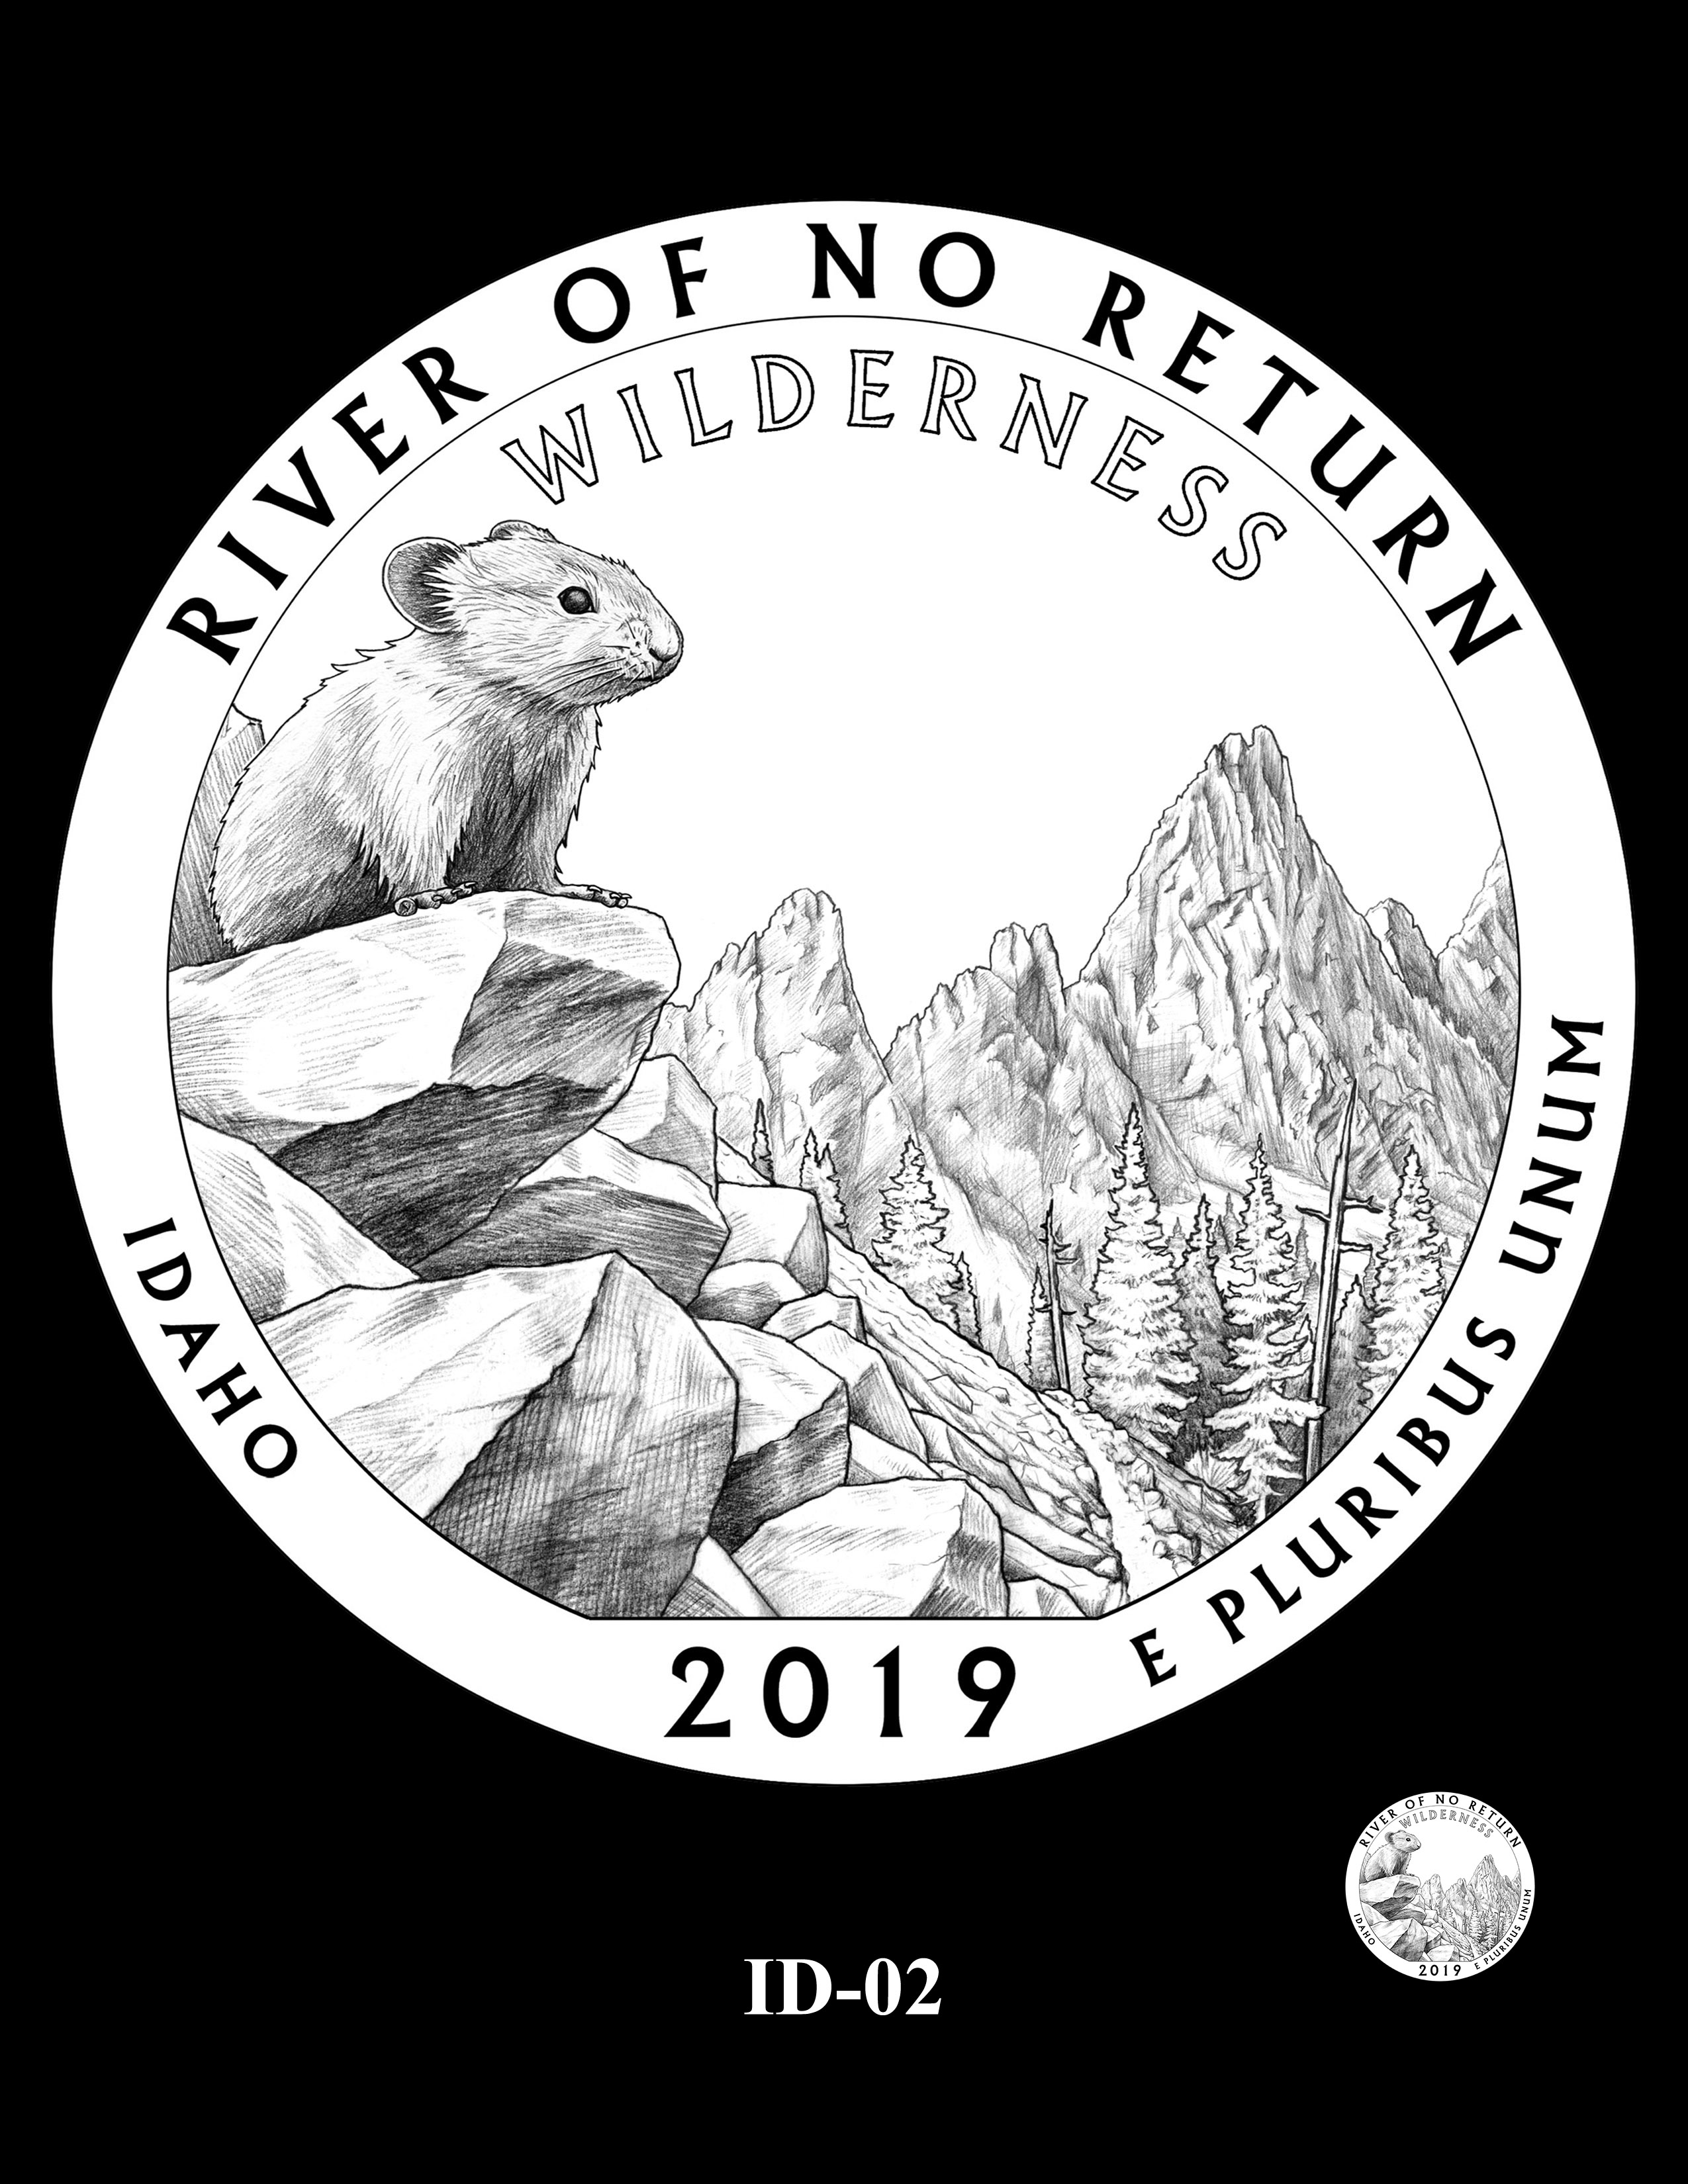 ID-02 -- 2019 America the Beautiful Quarters® Program